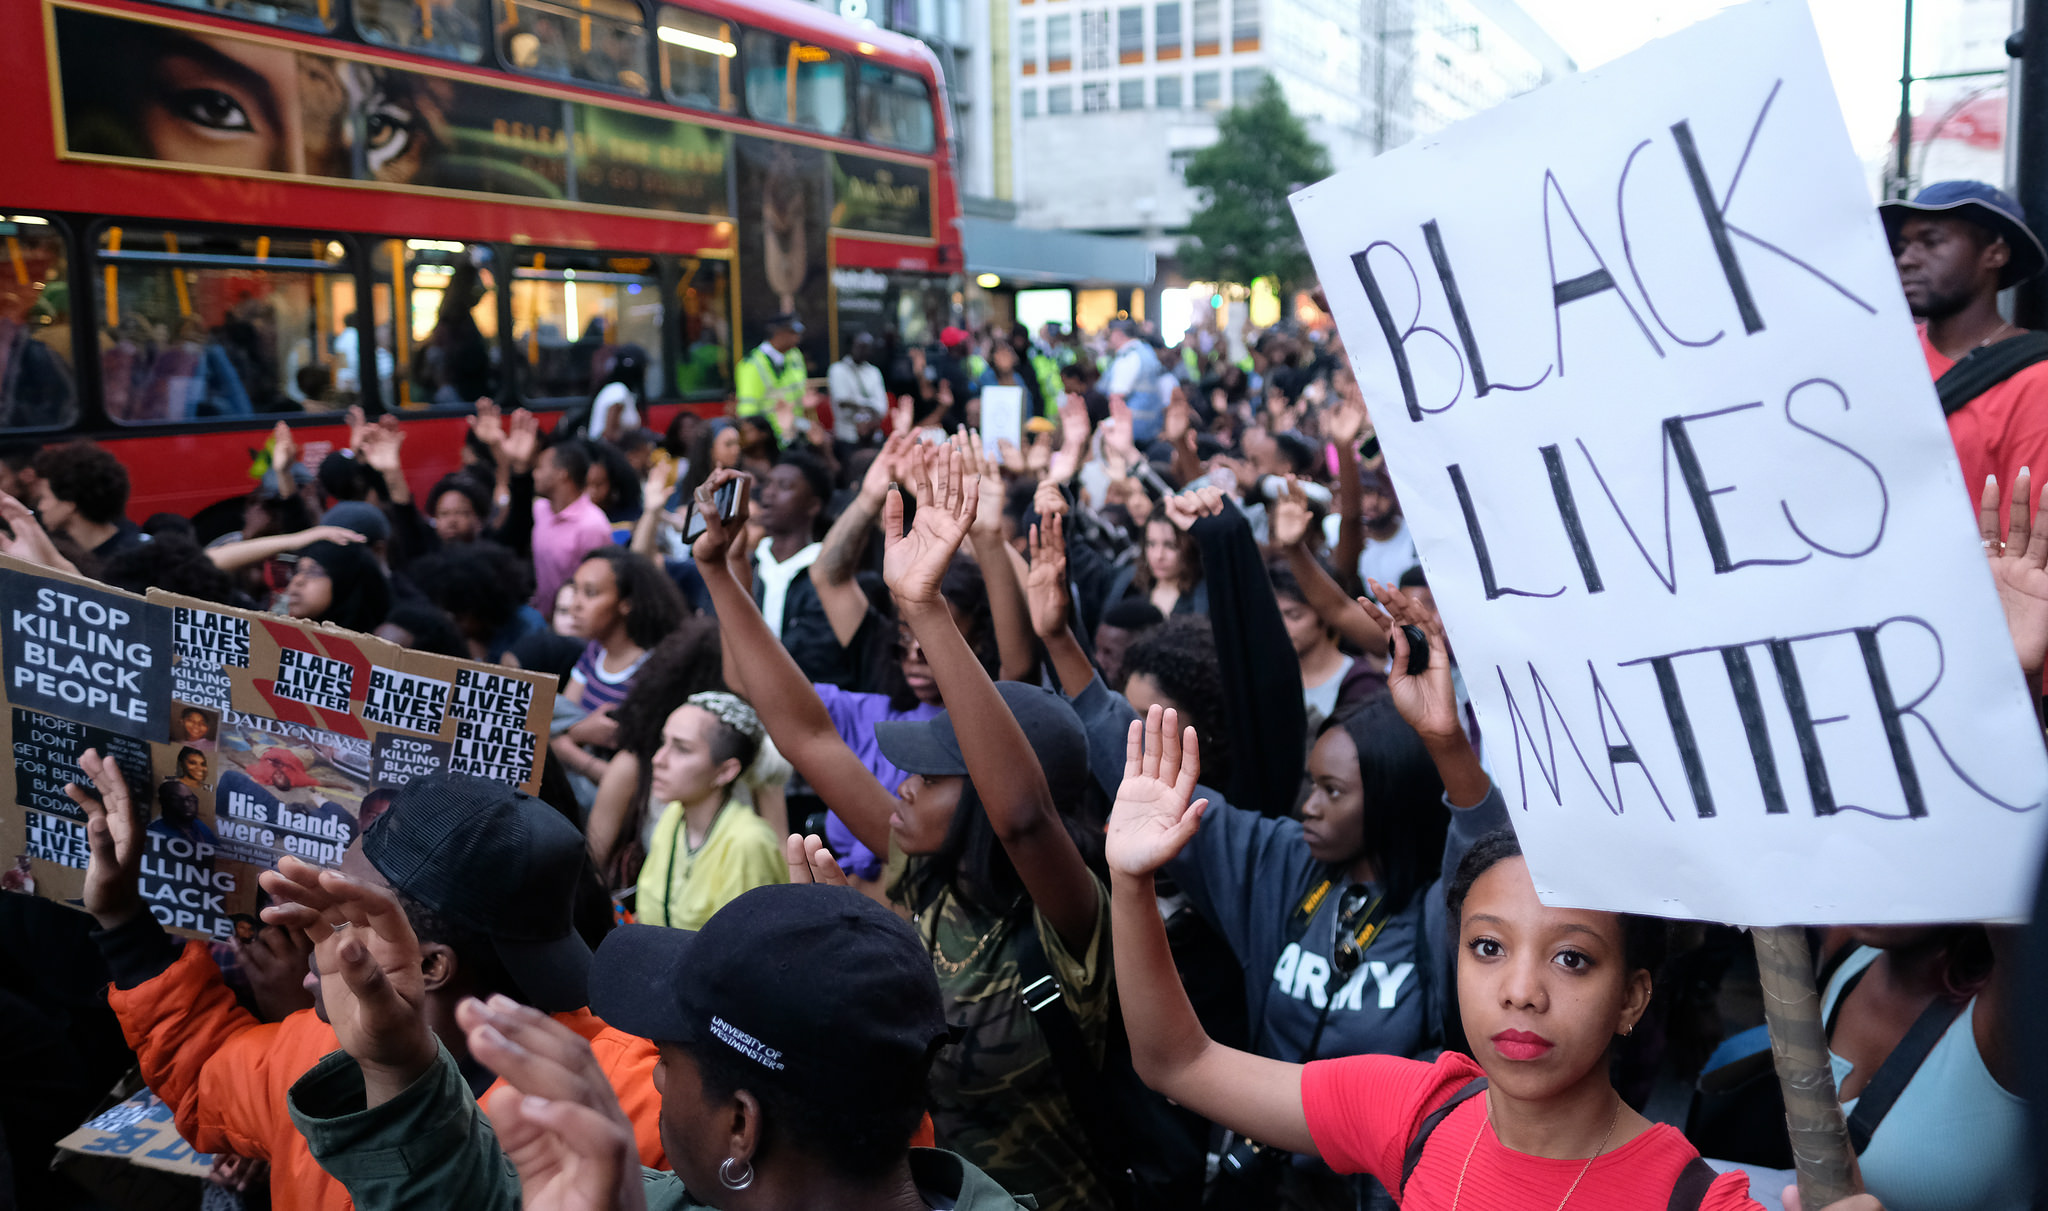 Black Lives Matter protesters in London's Oxford Street kneel and raise their hands, 8 July 2016. Photograph by Alisdare Hickson via Flickr